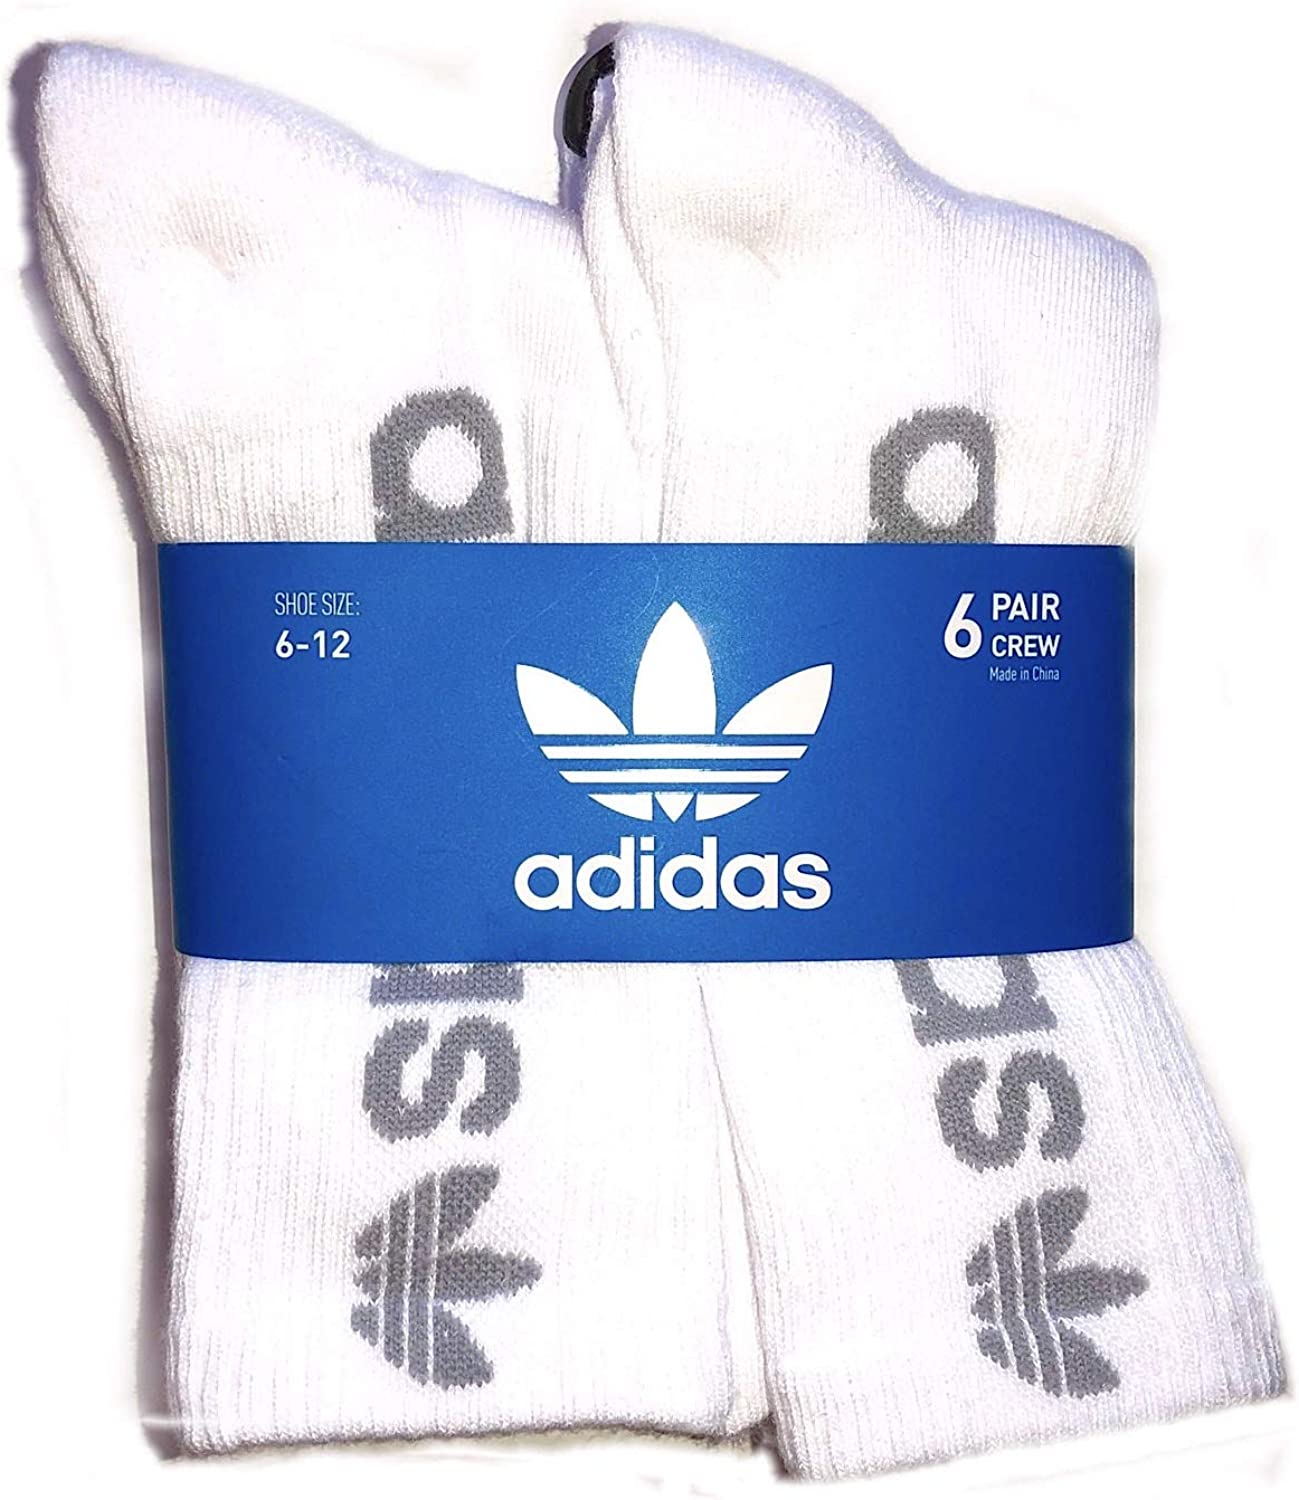 Adidas Men's Athletic Sport Moisture Wicking Cushioned Crew Socks 6-Pack/ 6-Pair (Shoe Size 6-12) (White/Grey)